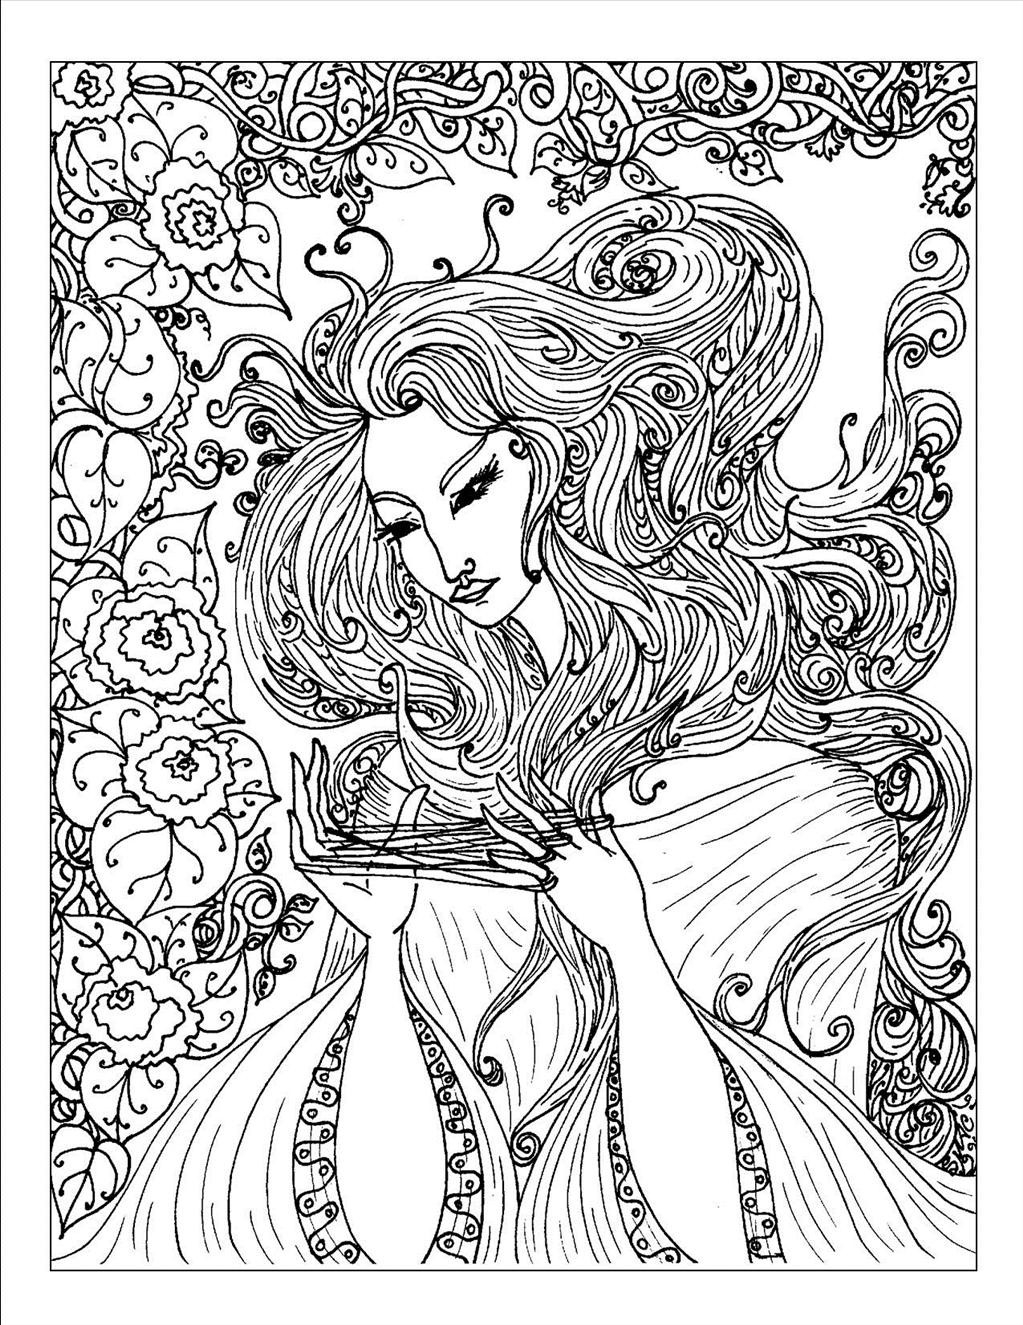 Plicated Coloring Pages Chacalavongfo Gallery – Free Coloring Sheets